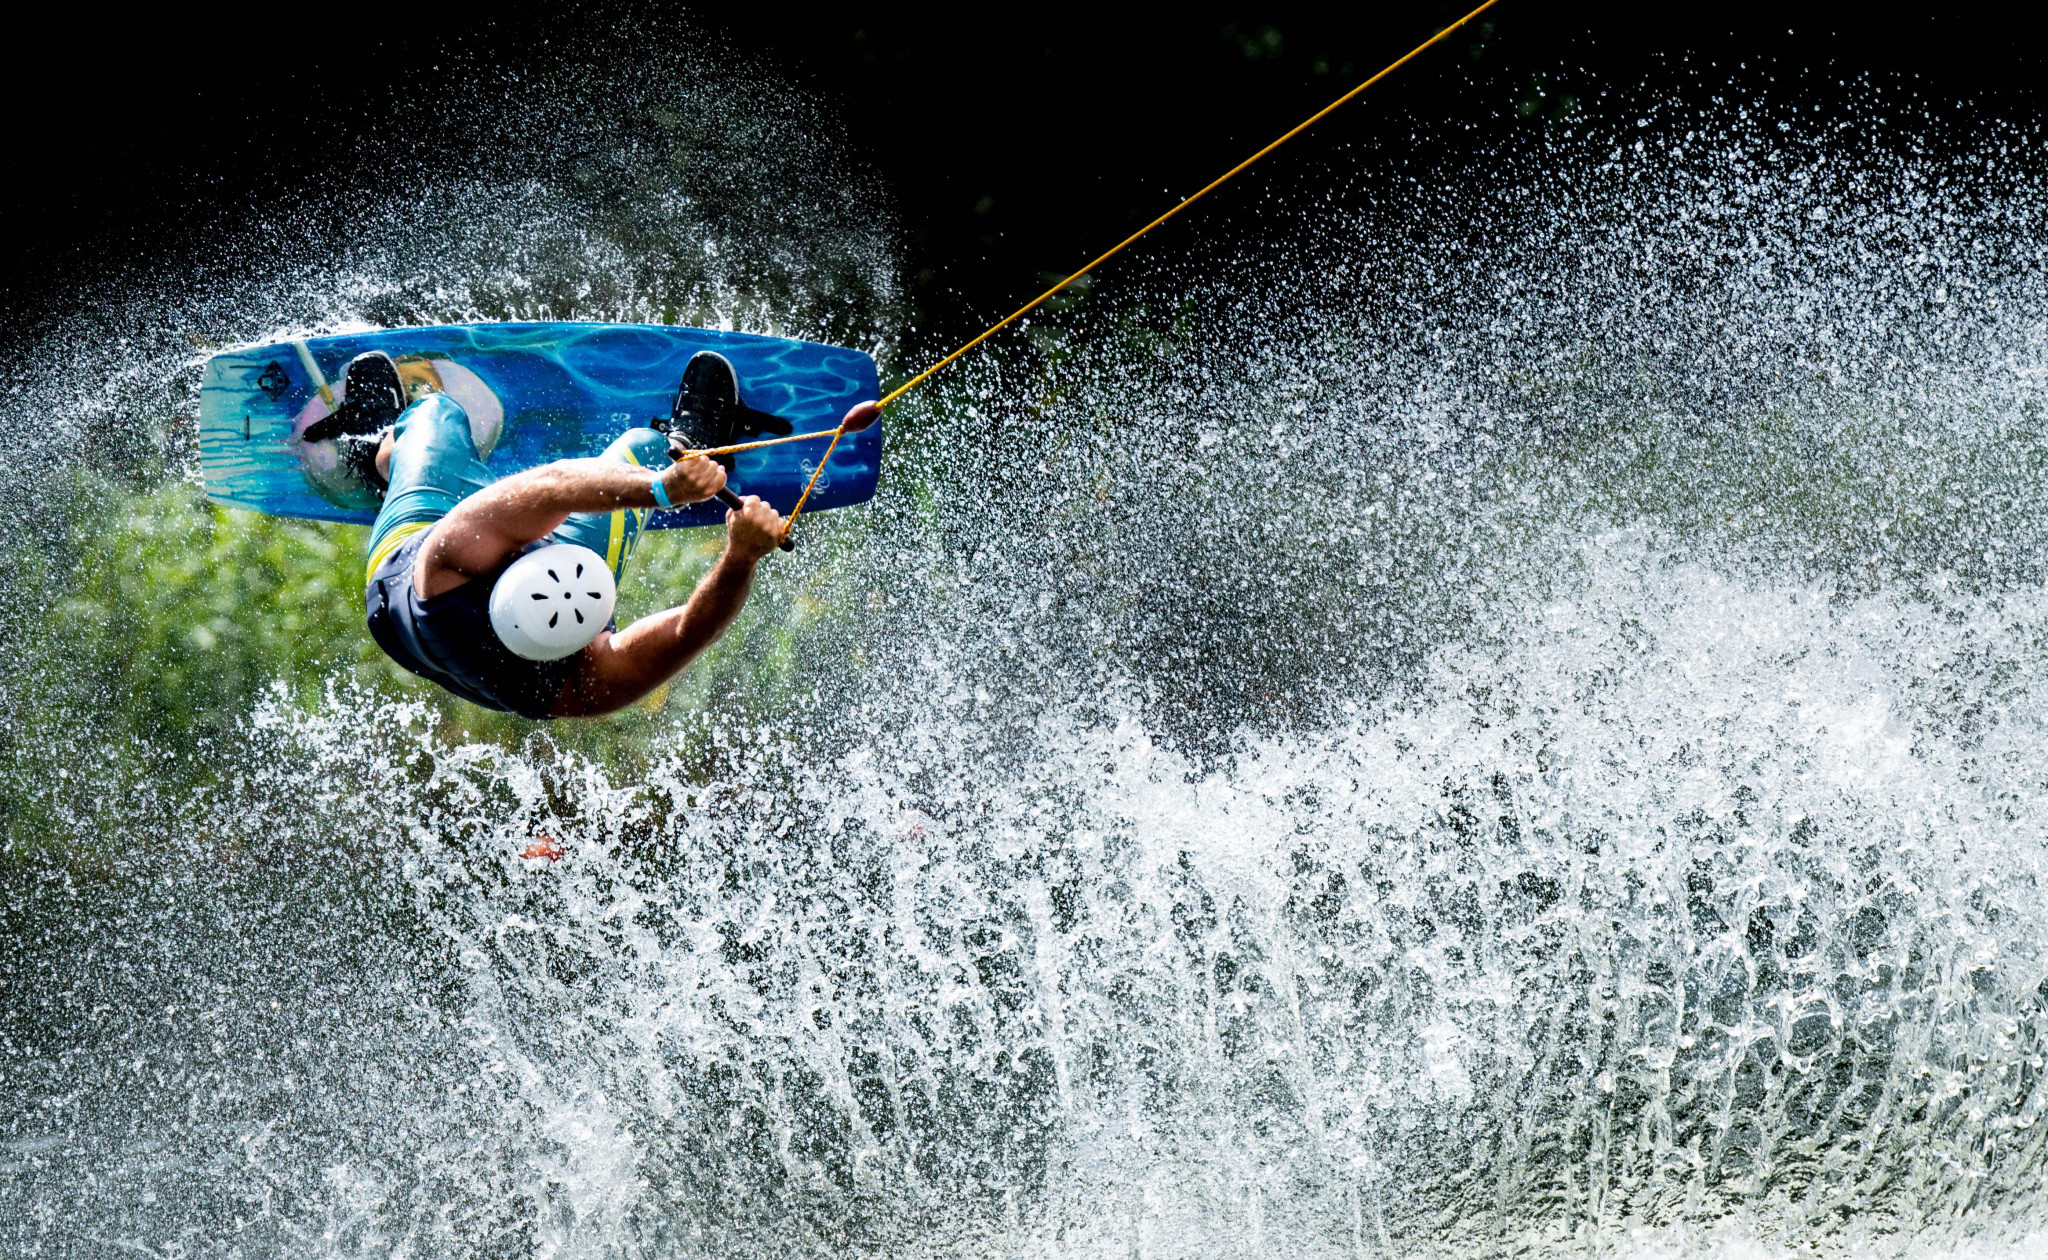 Italy dominate qualification in senior competition at IWWF World Cable Wakeboard and Wakeskate Championships